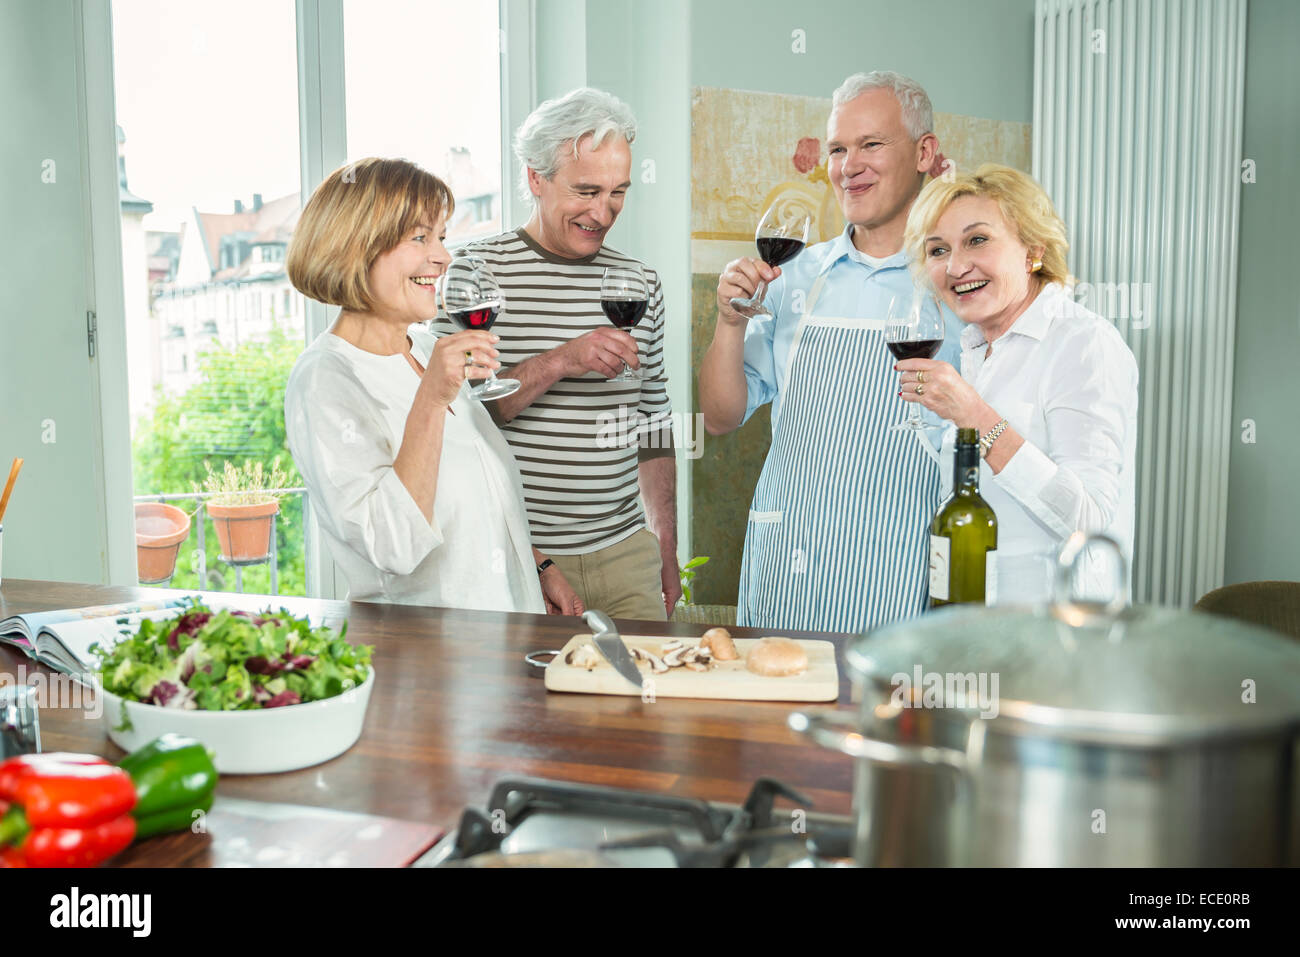 Four senior friends kitchen cooking drinking wine - Stock Image